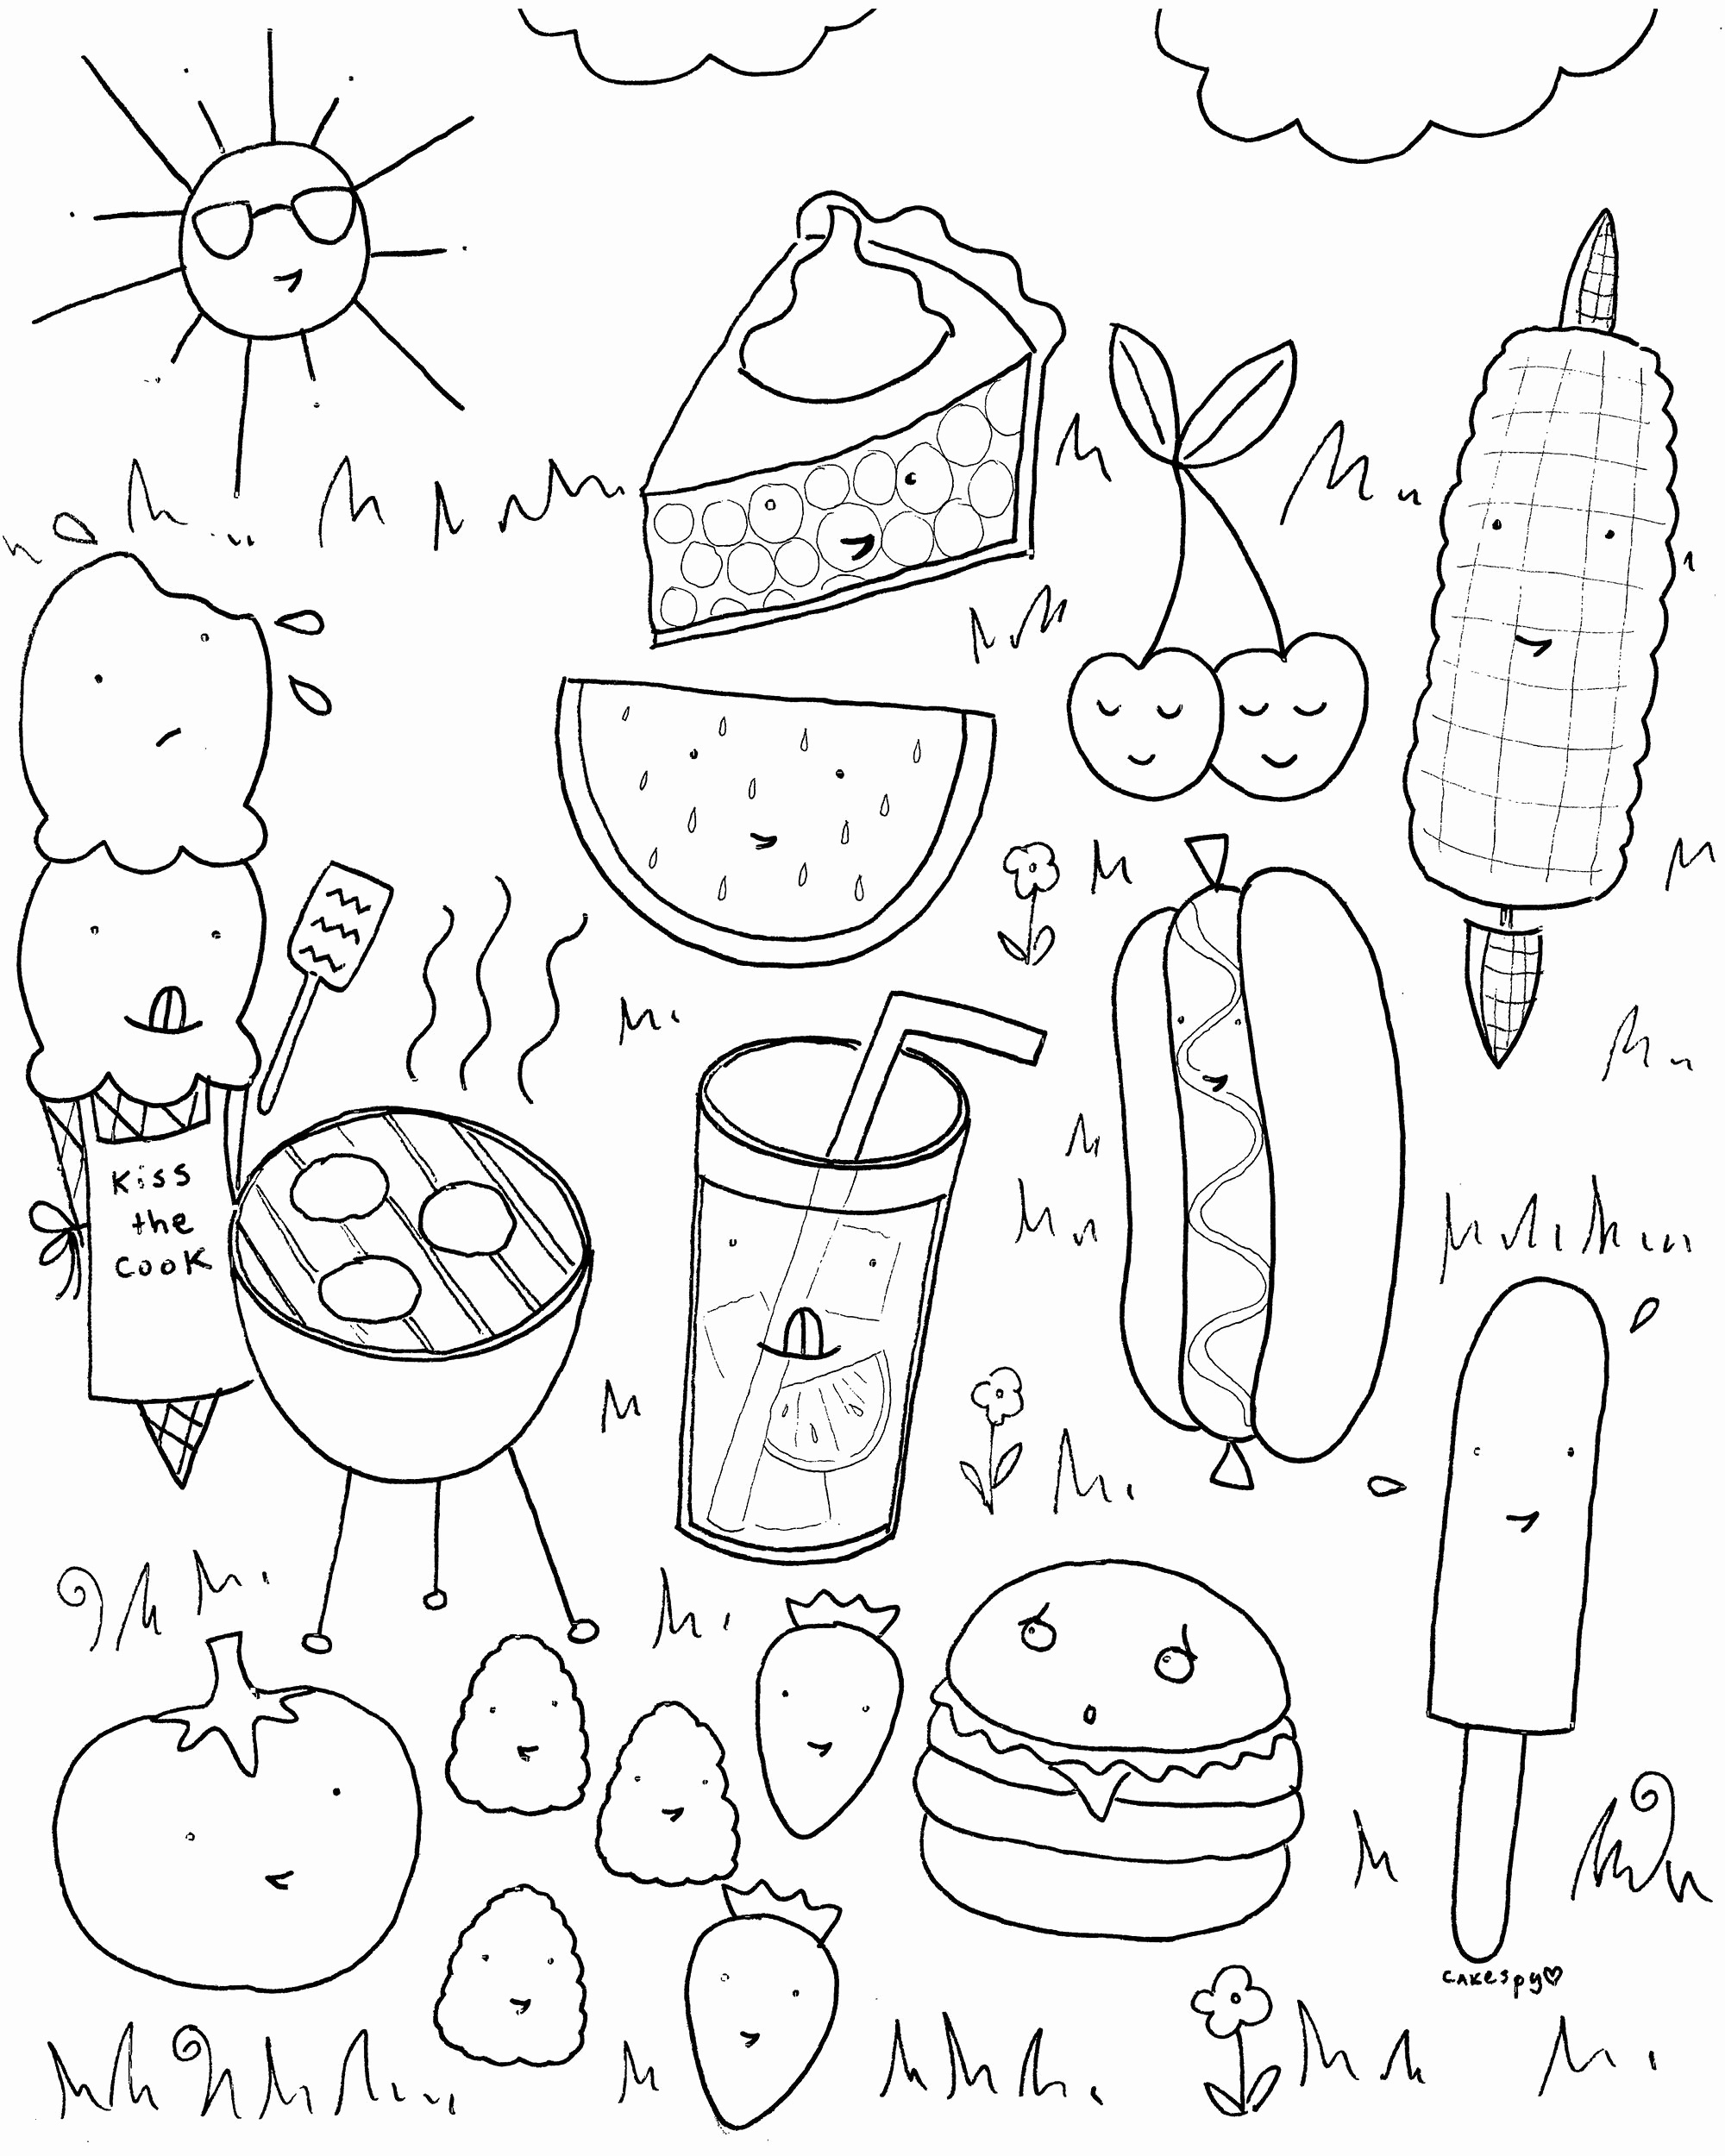 Coloring Pages To Print For Free Beautiful Beach Coloring Pages Nice - Free Printable Summer Coloring Pages